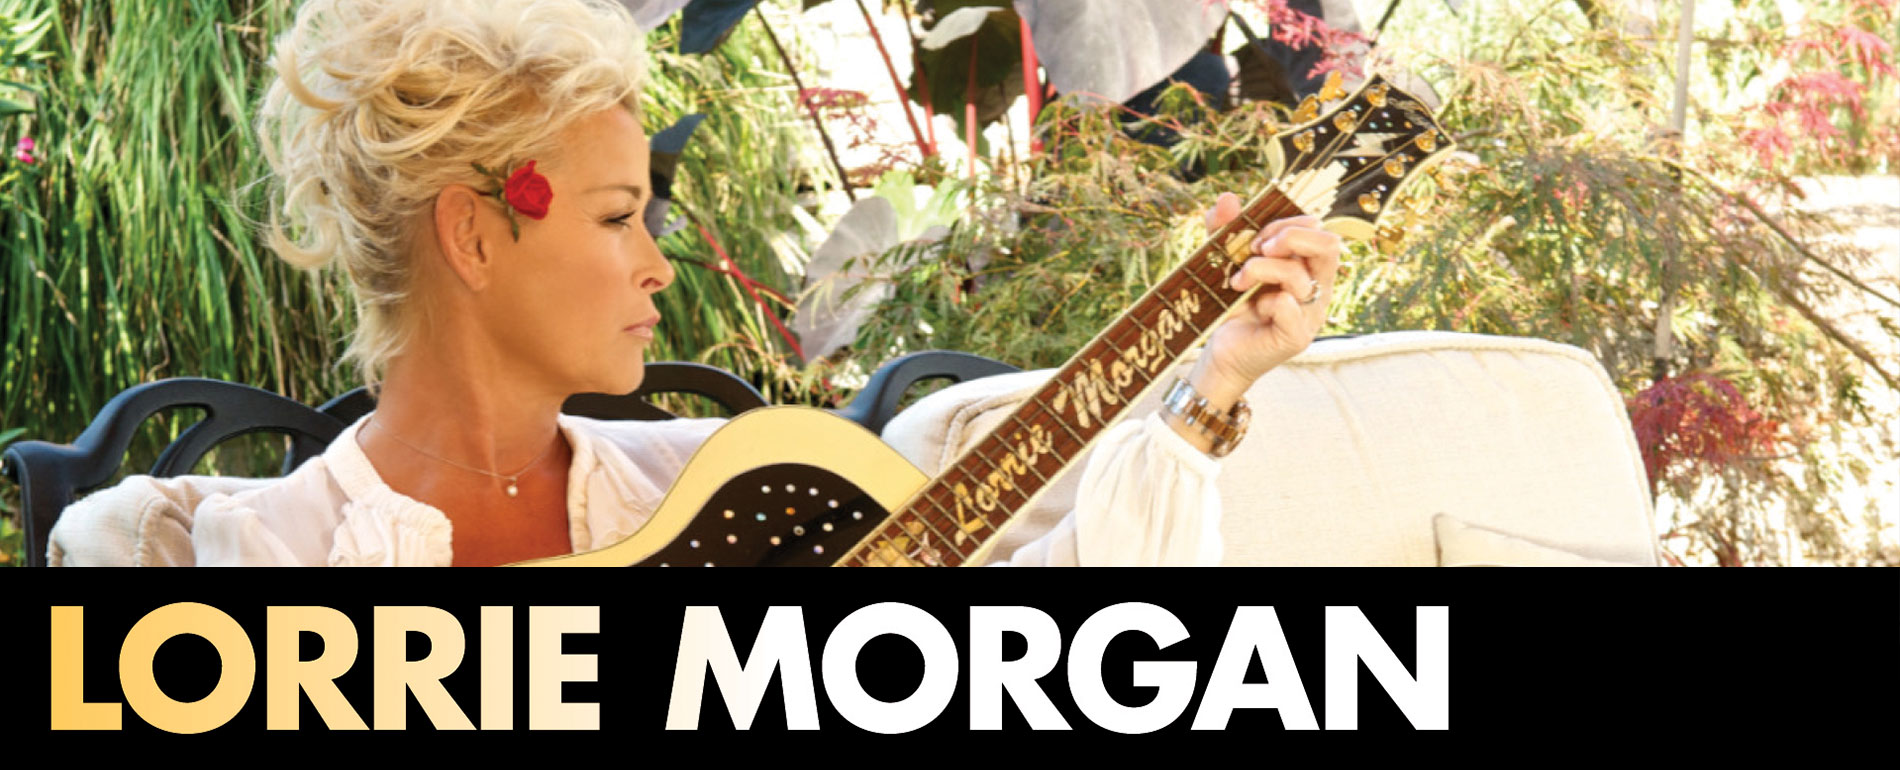 pocono entertainment - lorrie morgan